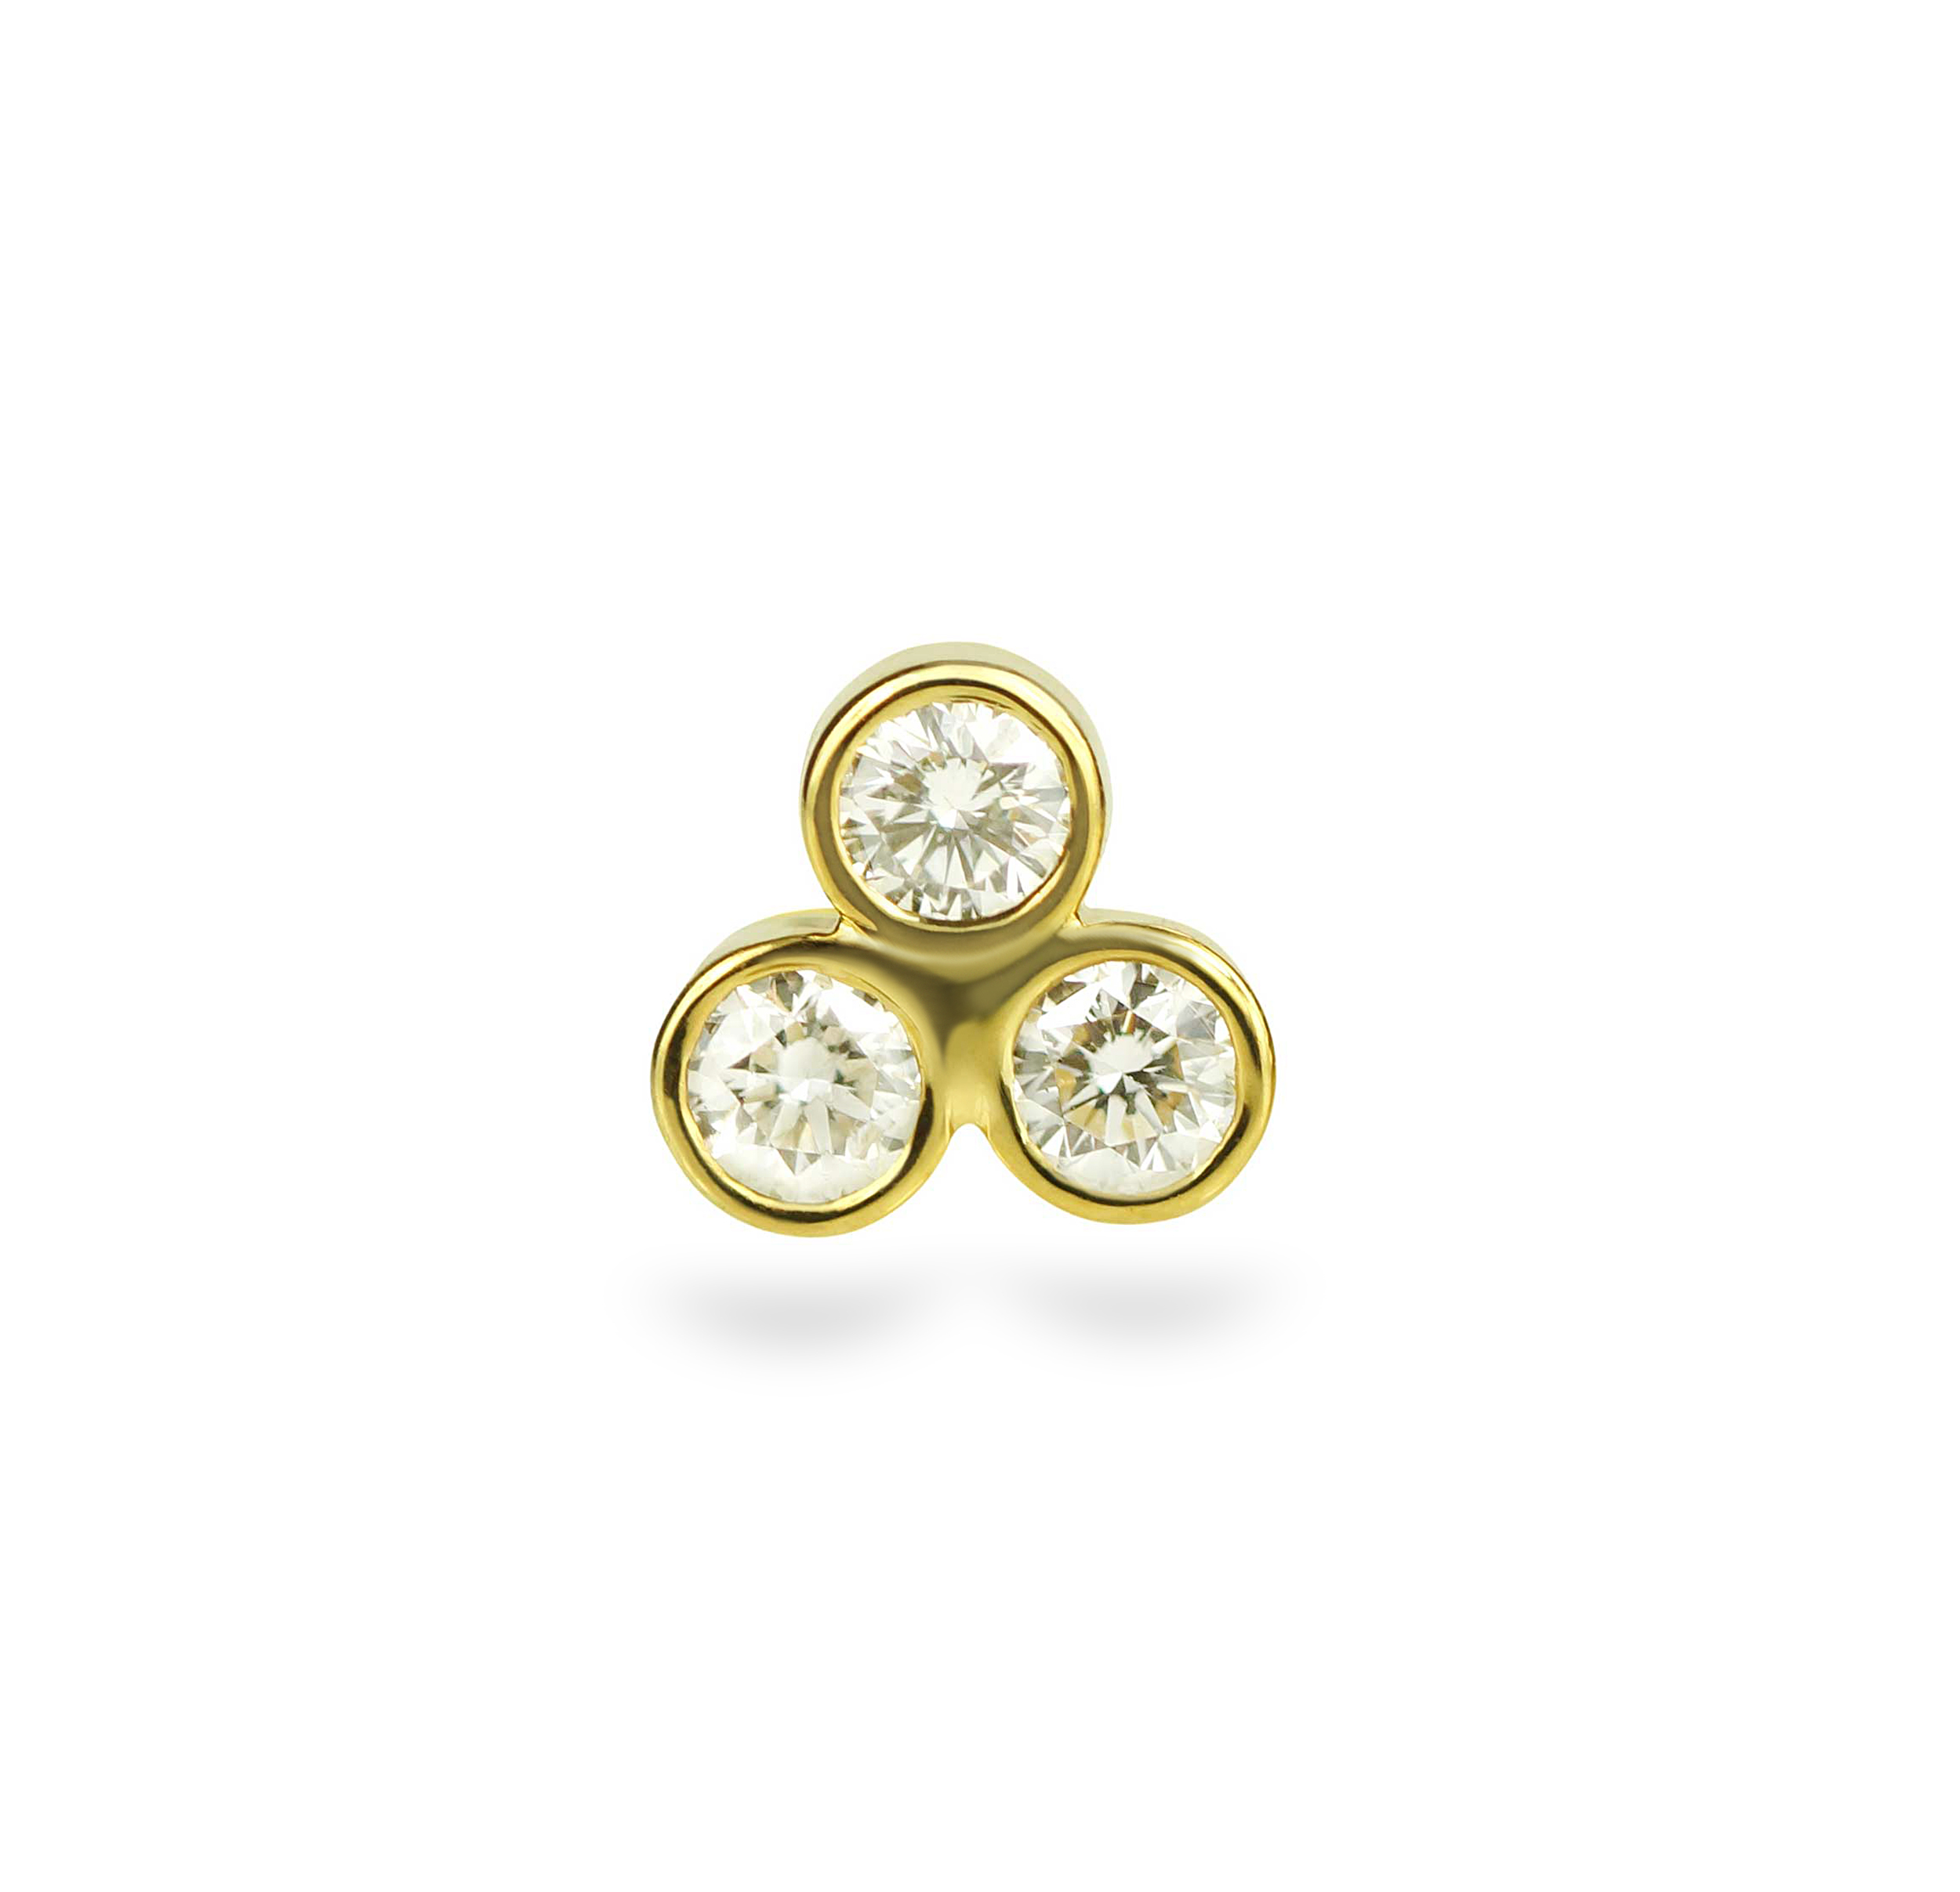 luxury-piercing-diamond-piercing-studs-screw-backs-gold-buy-online-lena-cohen-uk